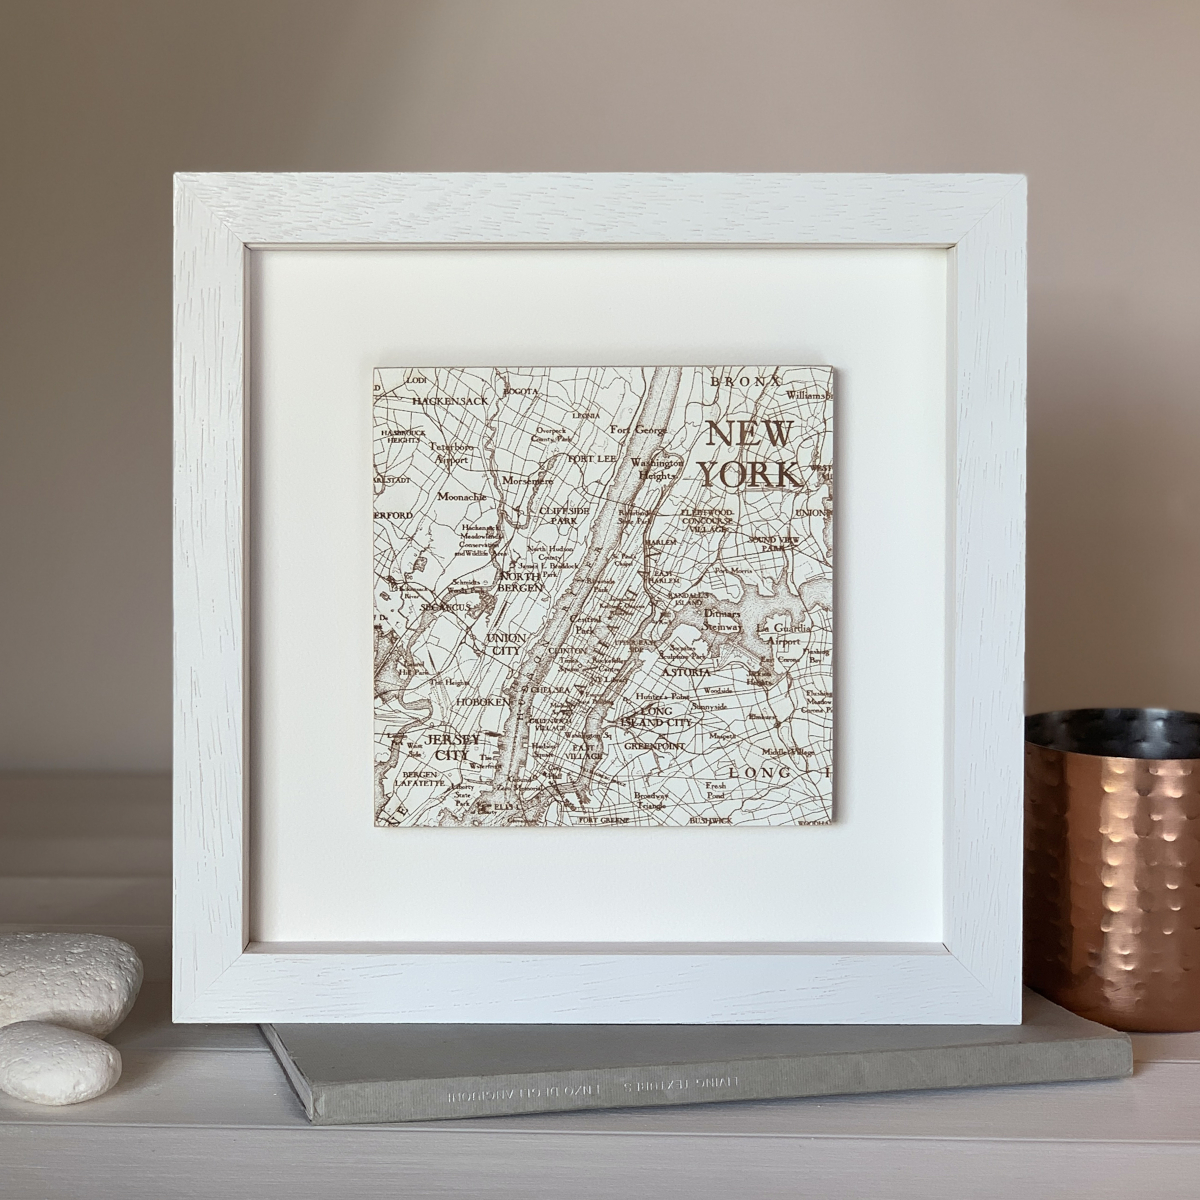 Hand painted engraved map of New York from Bombus, a perfect birthday gift for her